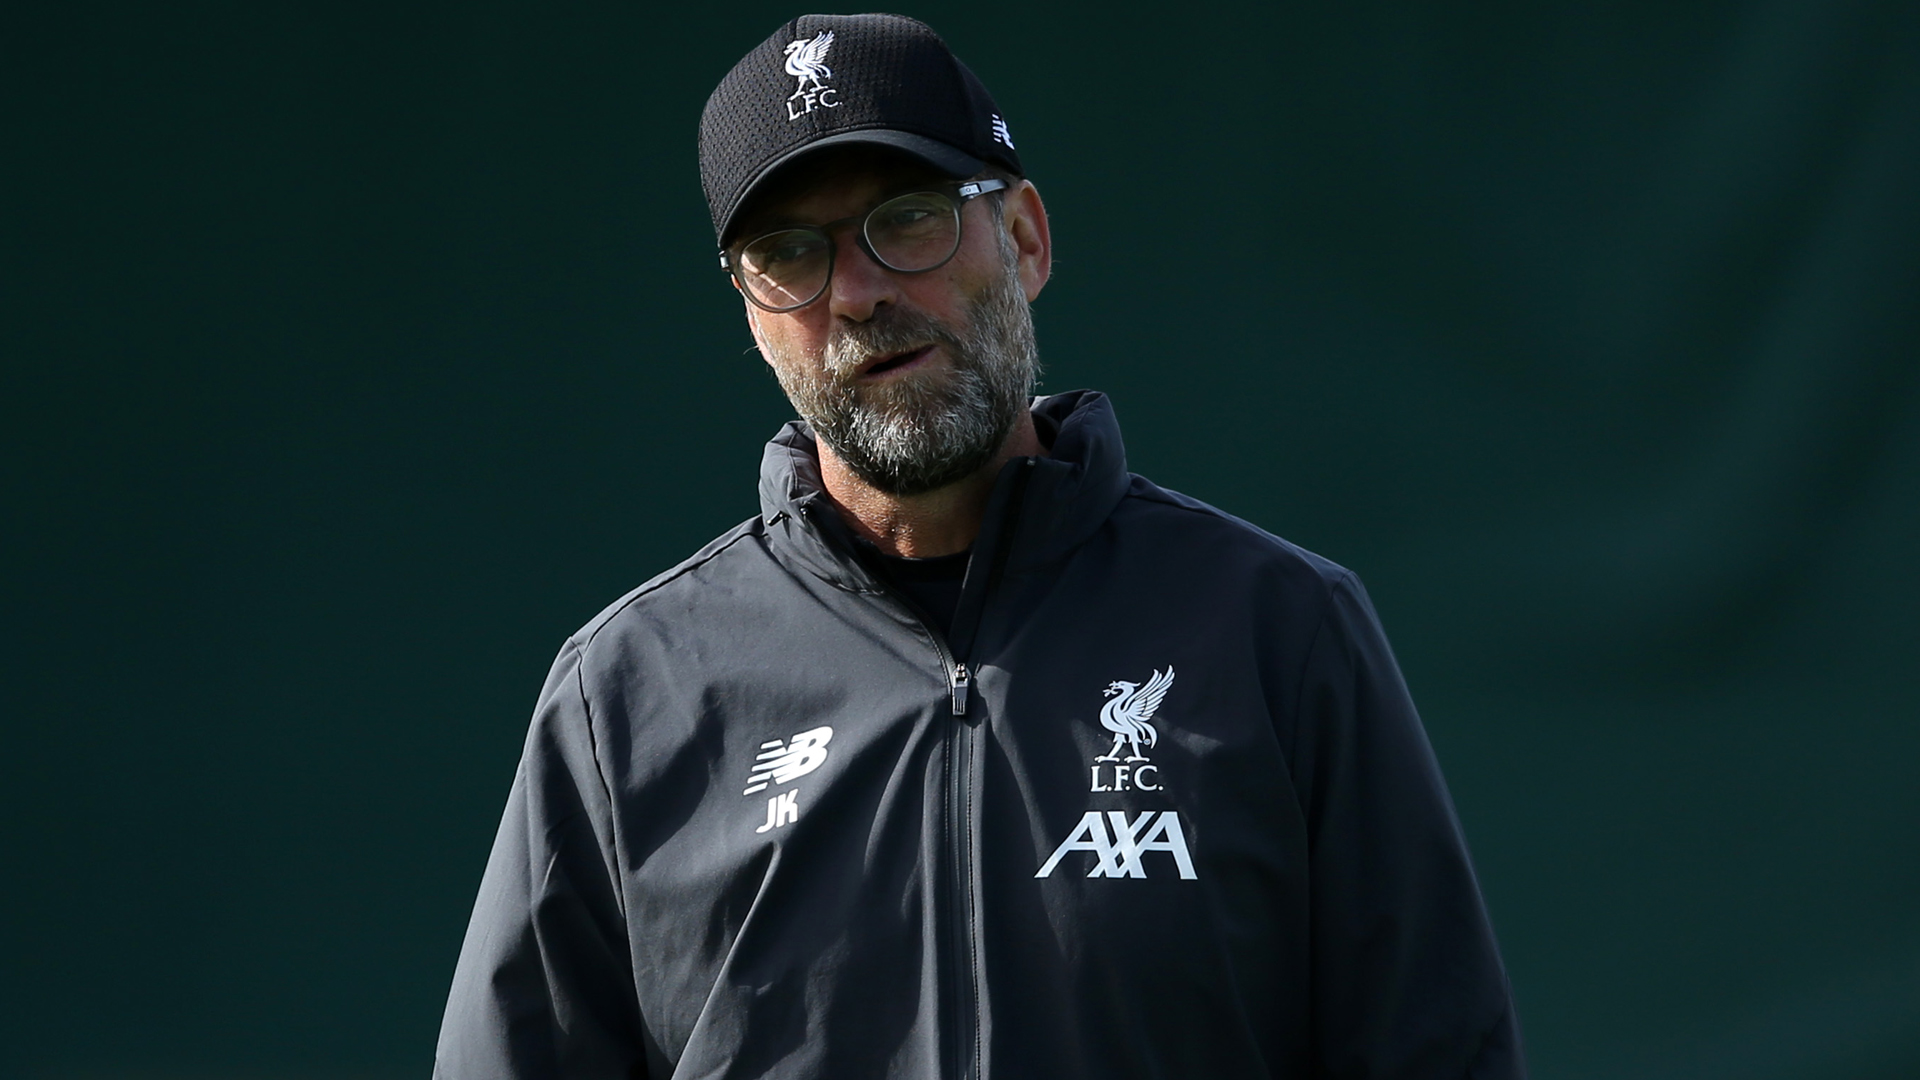 Liverpool may be European champions, but Jurgen Klopp feels they are underdogs against Napoli.